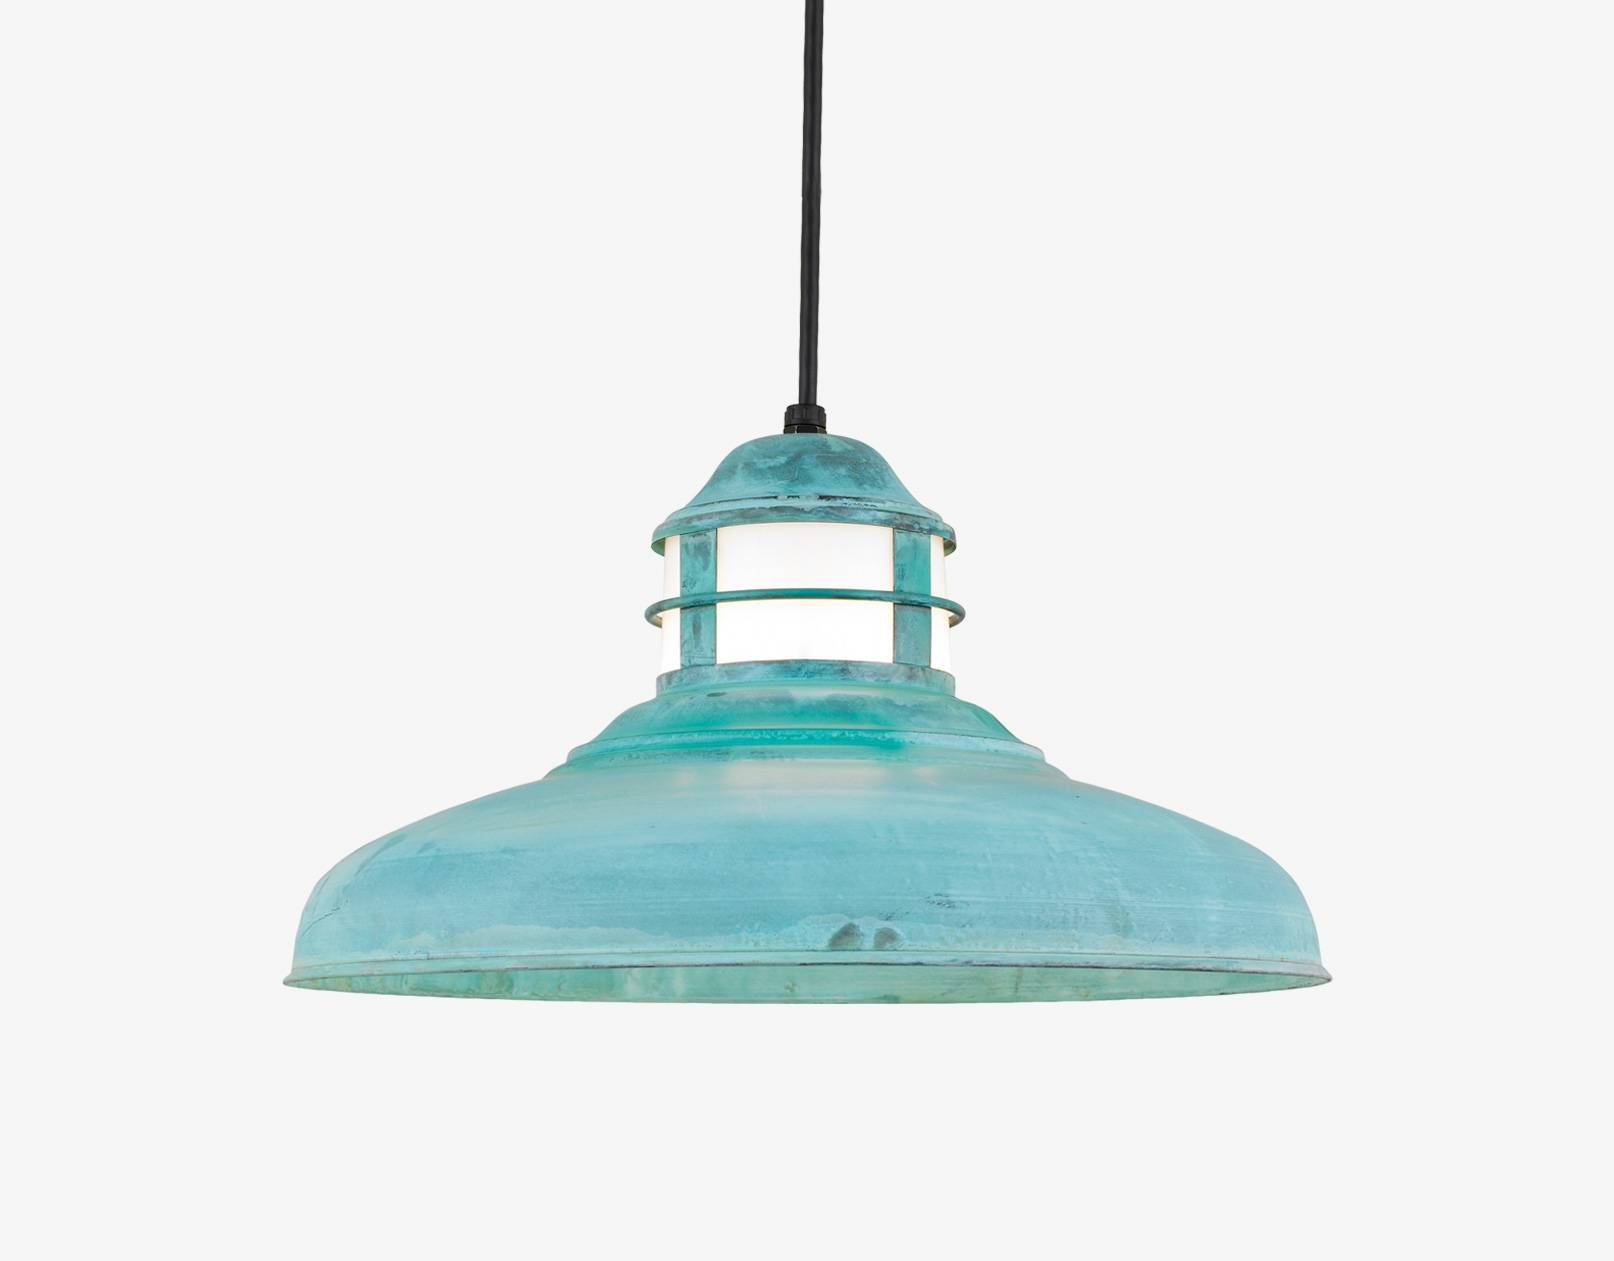 Lighting Fixtures For Your Interior Design Needs intended for Commercial Hanging Lights Fixtures (Image 12 of 15)